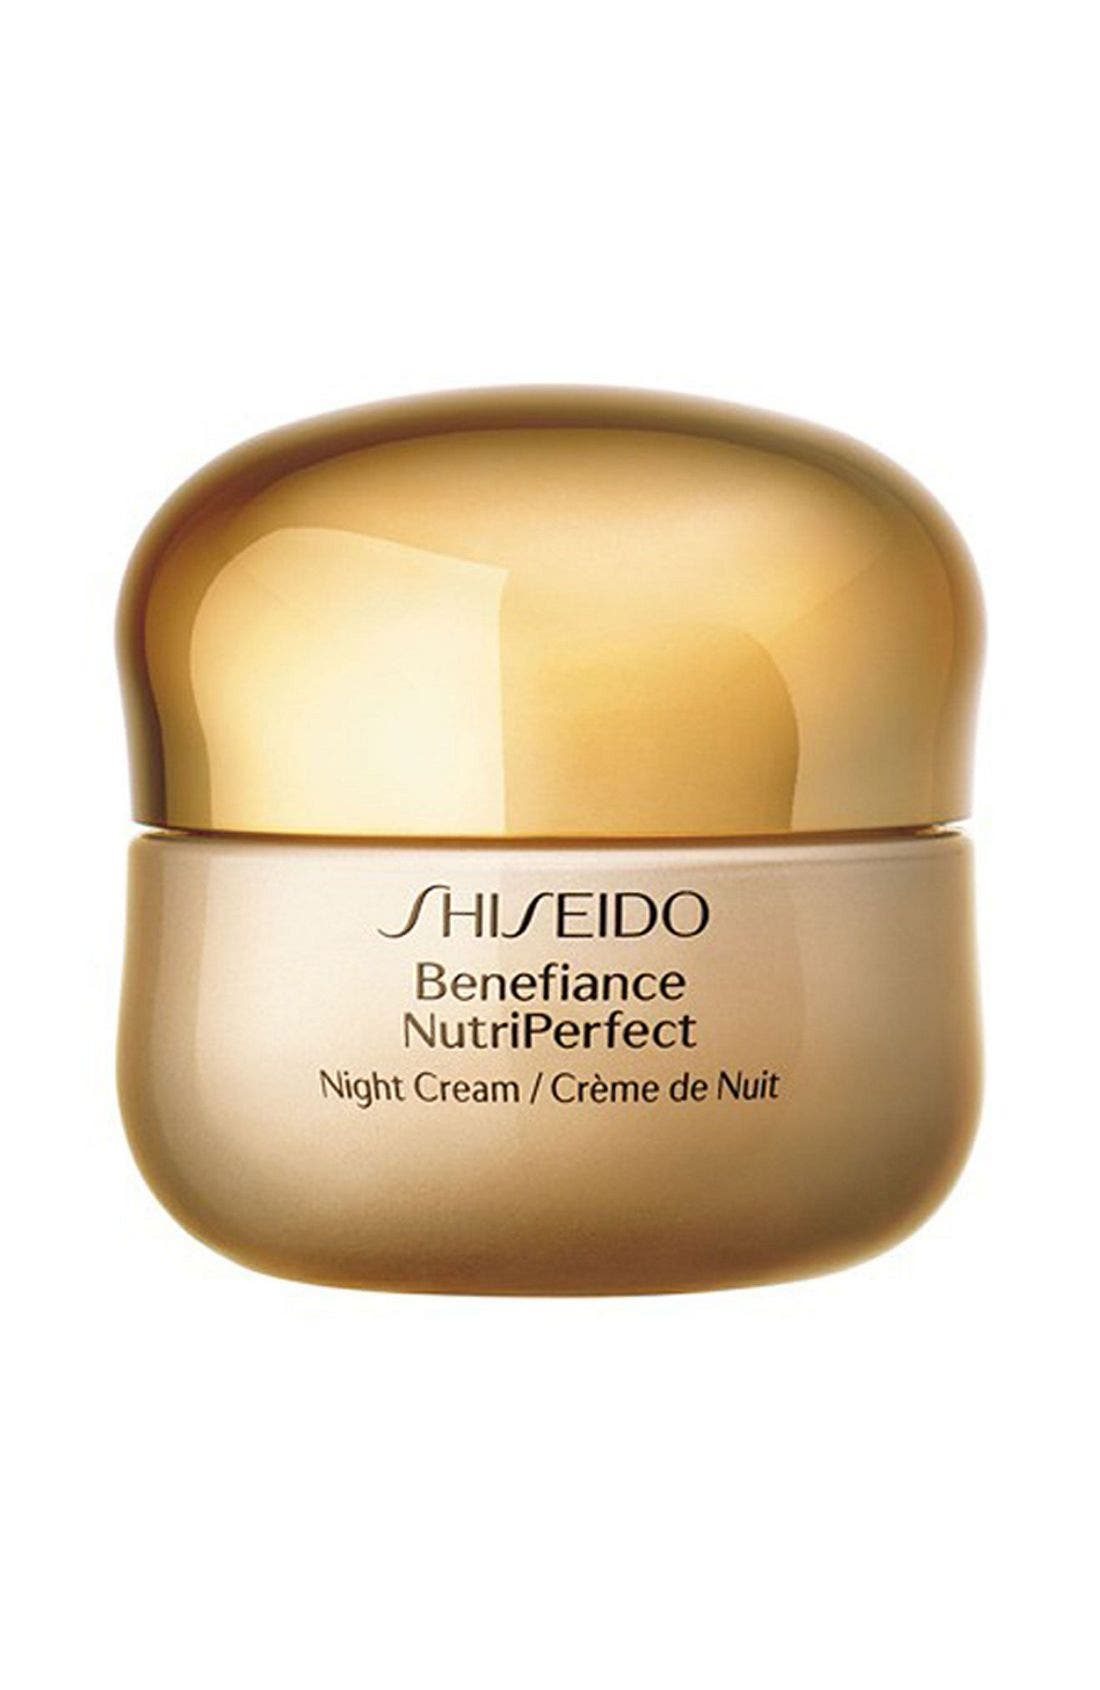 Shiseido 'Benefiance NutriPerfect' Night Cream